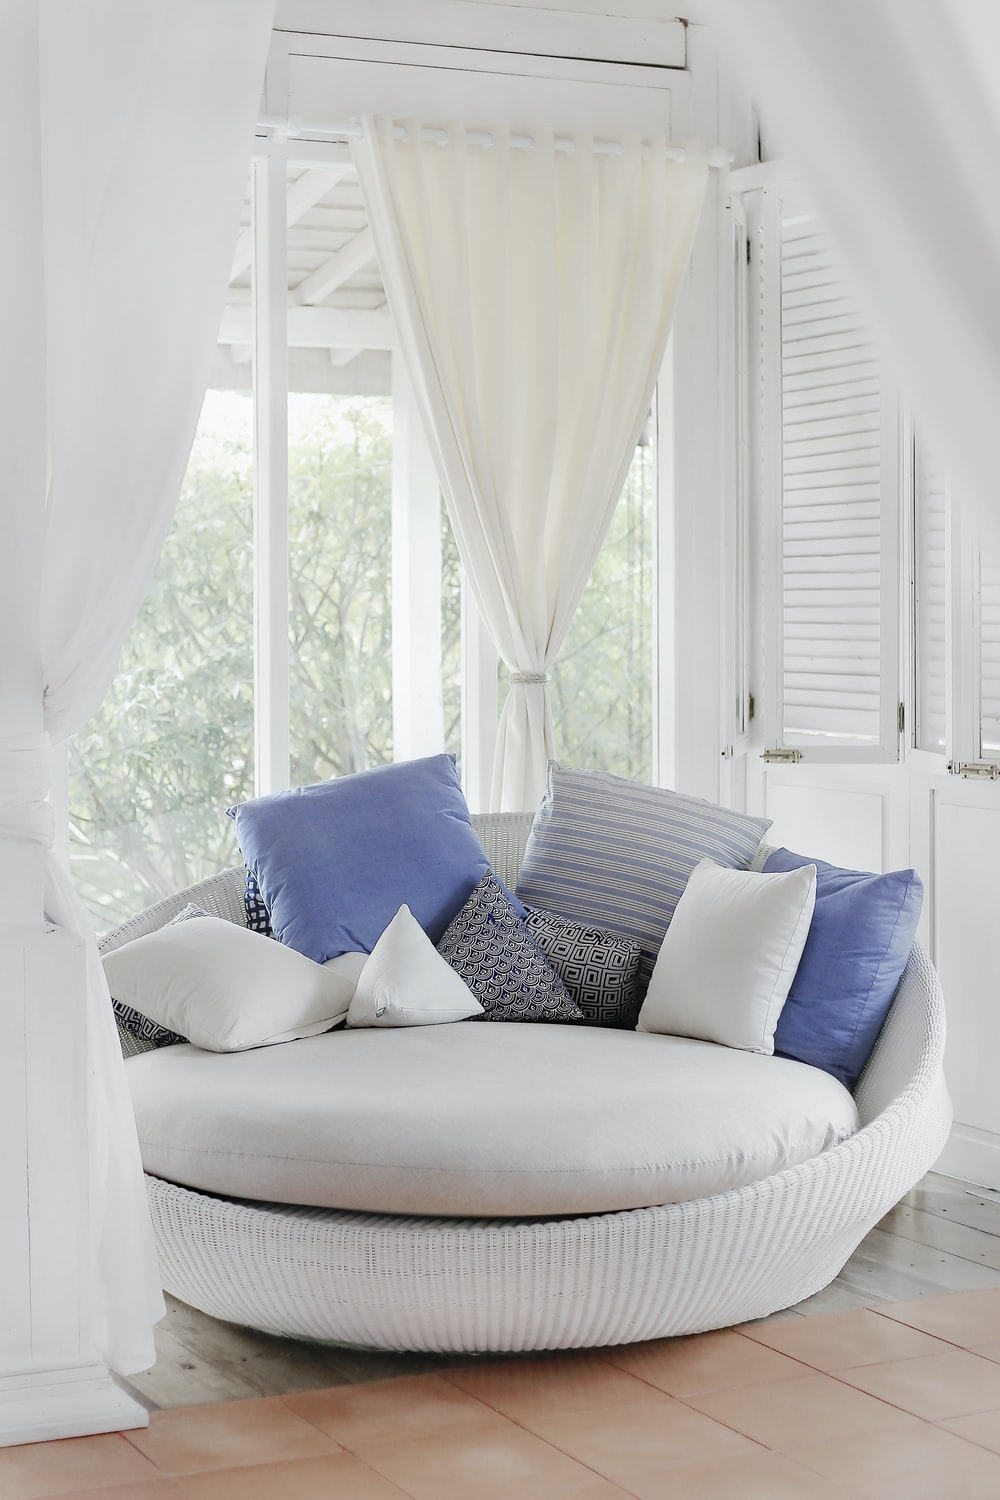 white cuddle chair and throw pillows near window